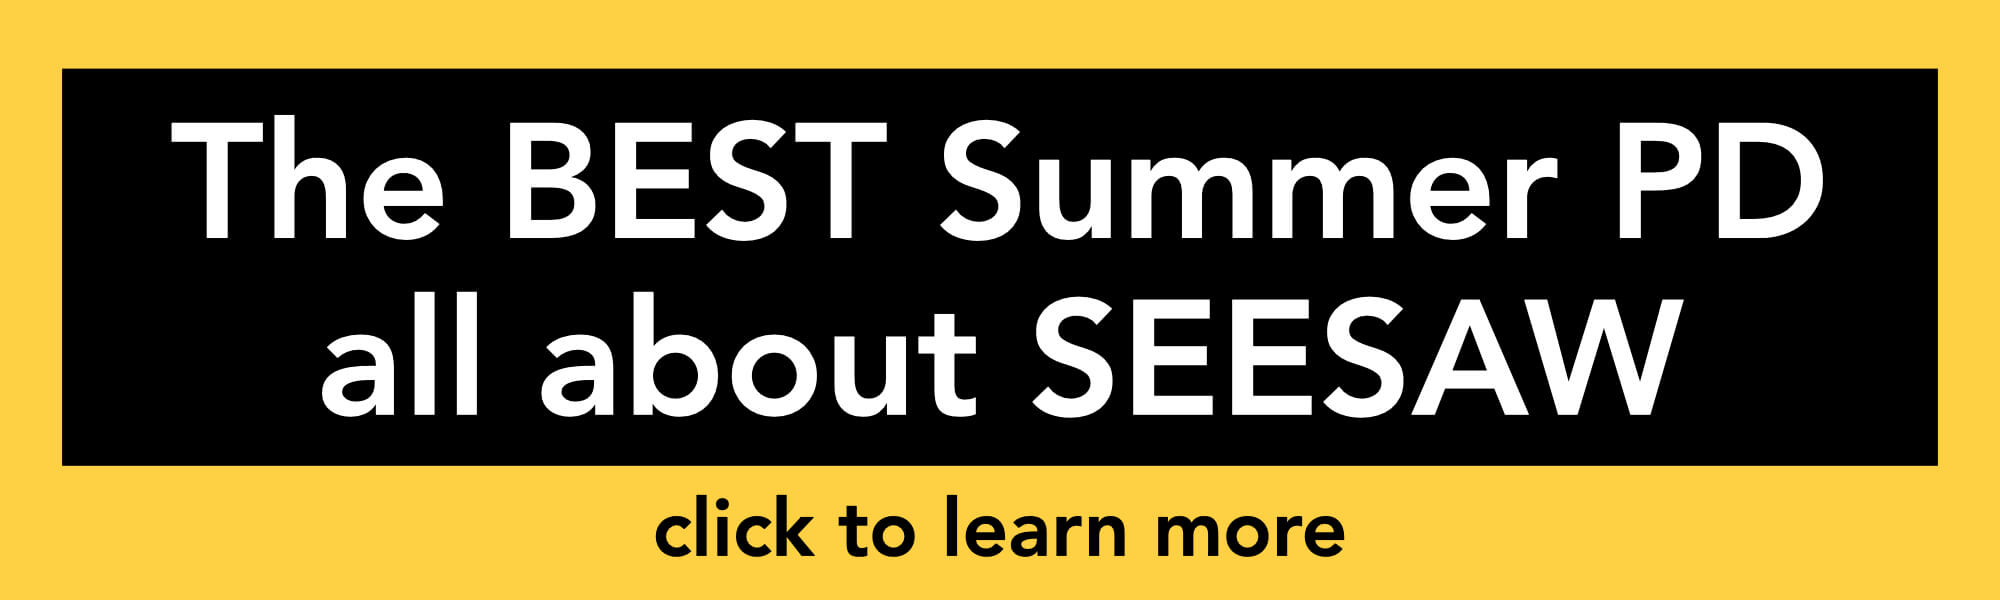 Summer PD about Seesaw